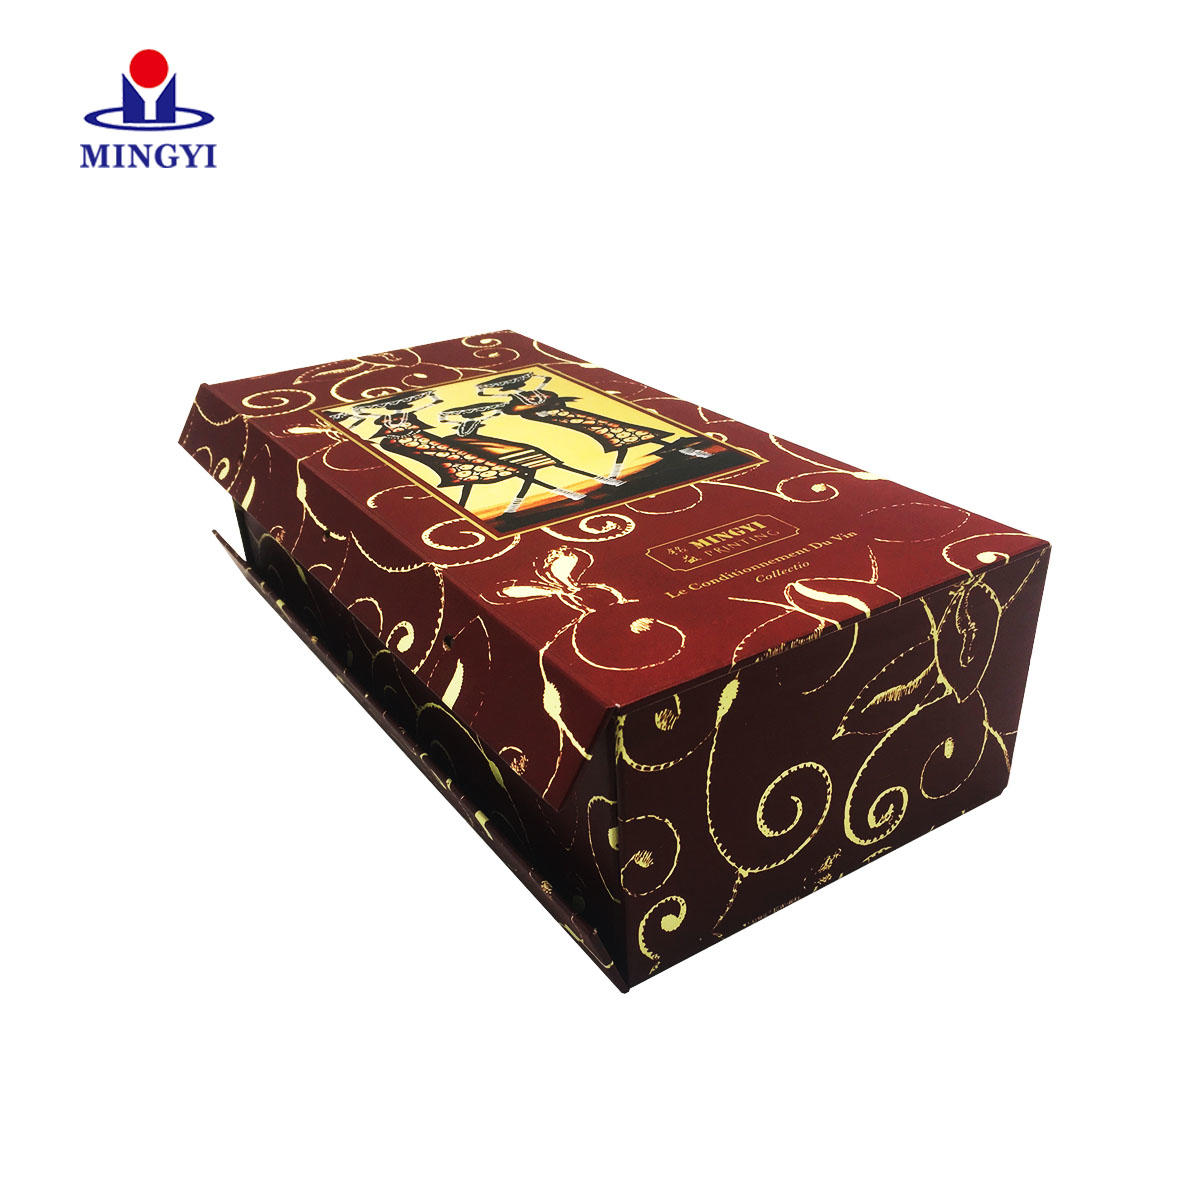 Mingyi new design luxury grey board wine packaging boxes make in china which is best for glass bottle